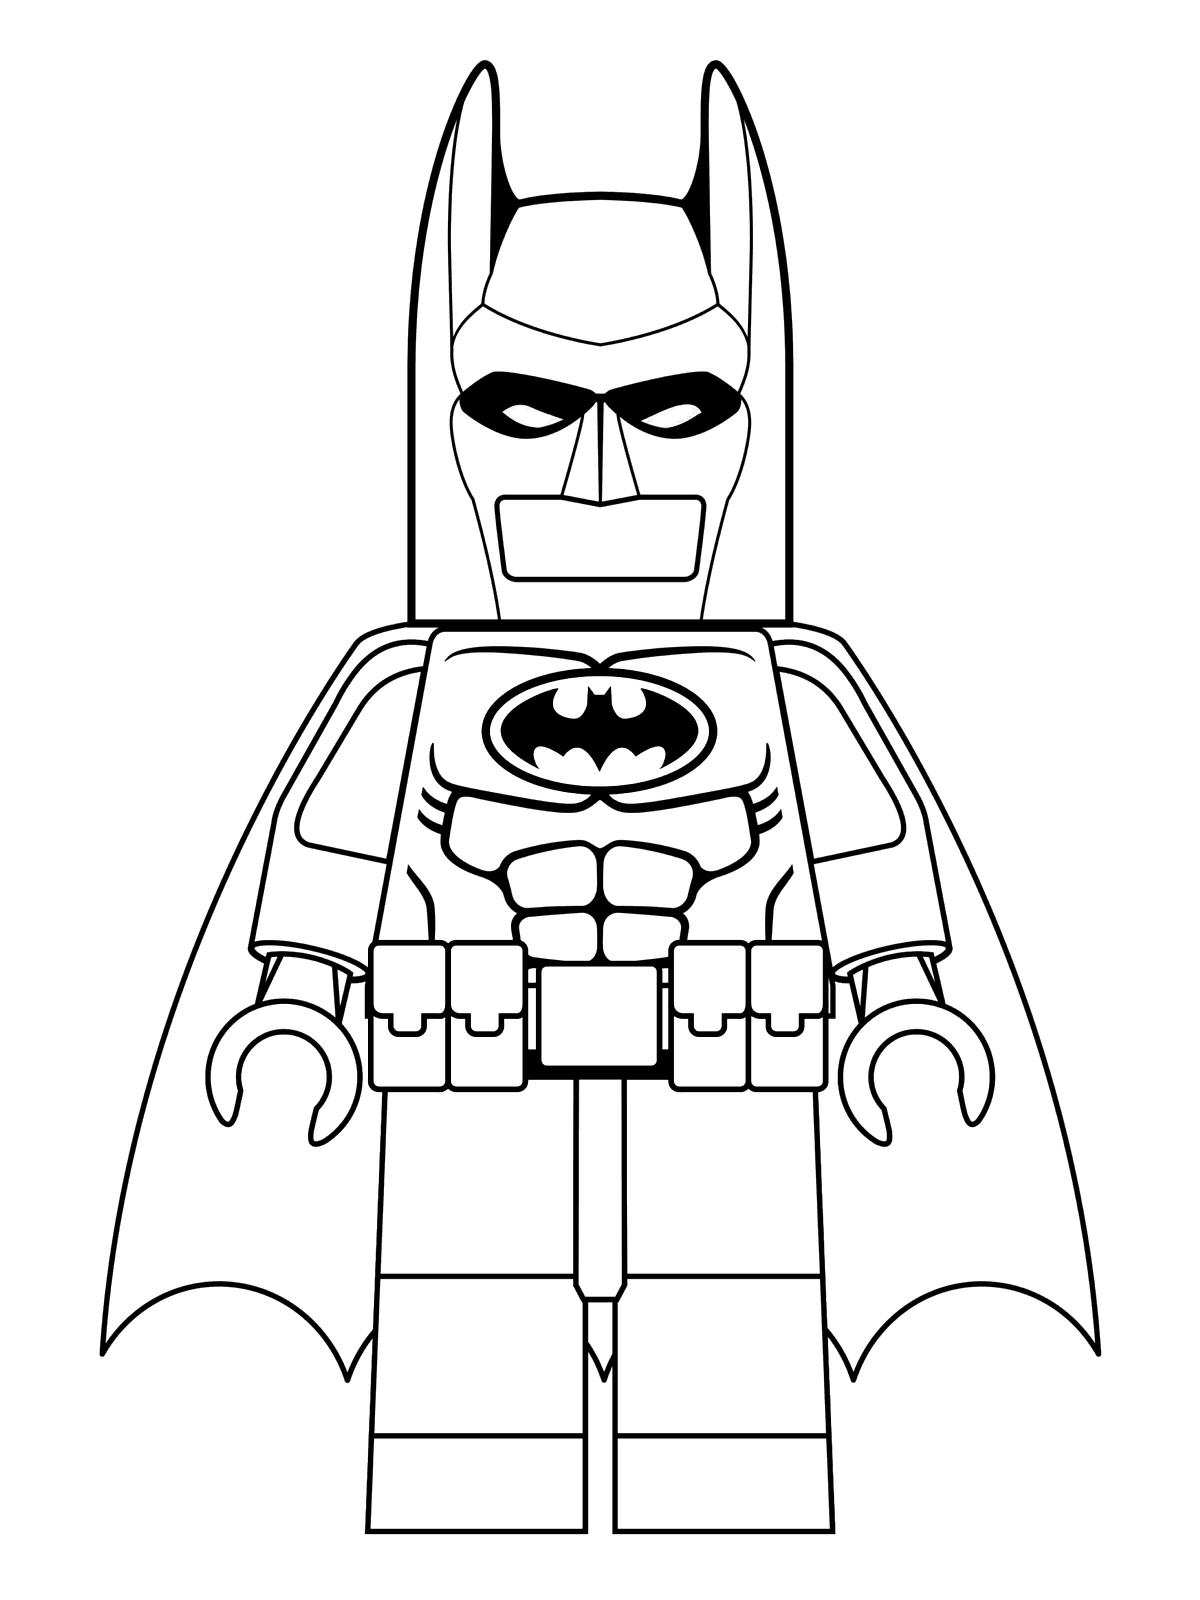 Enfant lego batman 4 coloriage lego batman coloriages - Dessin lego a colorier ...